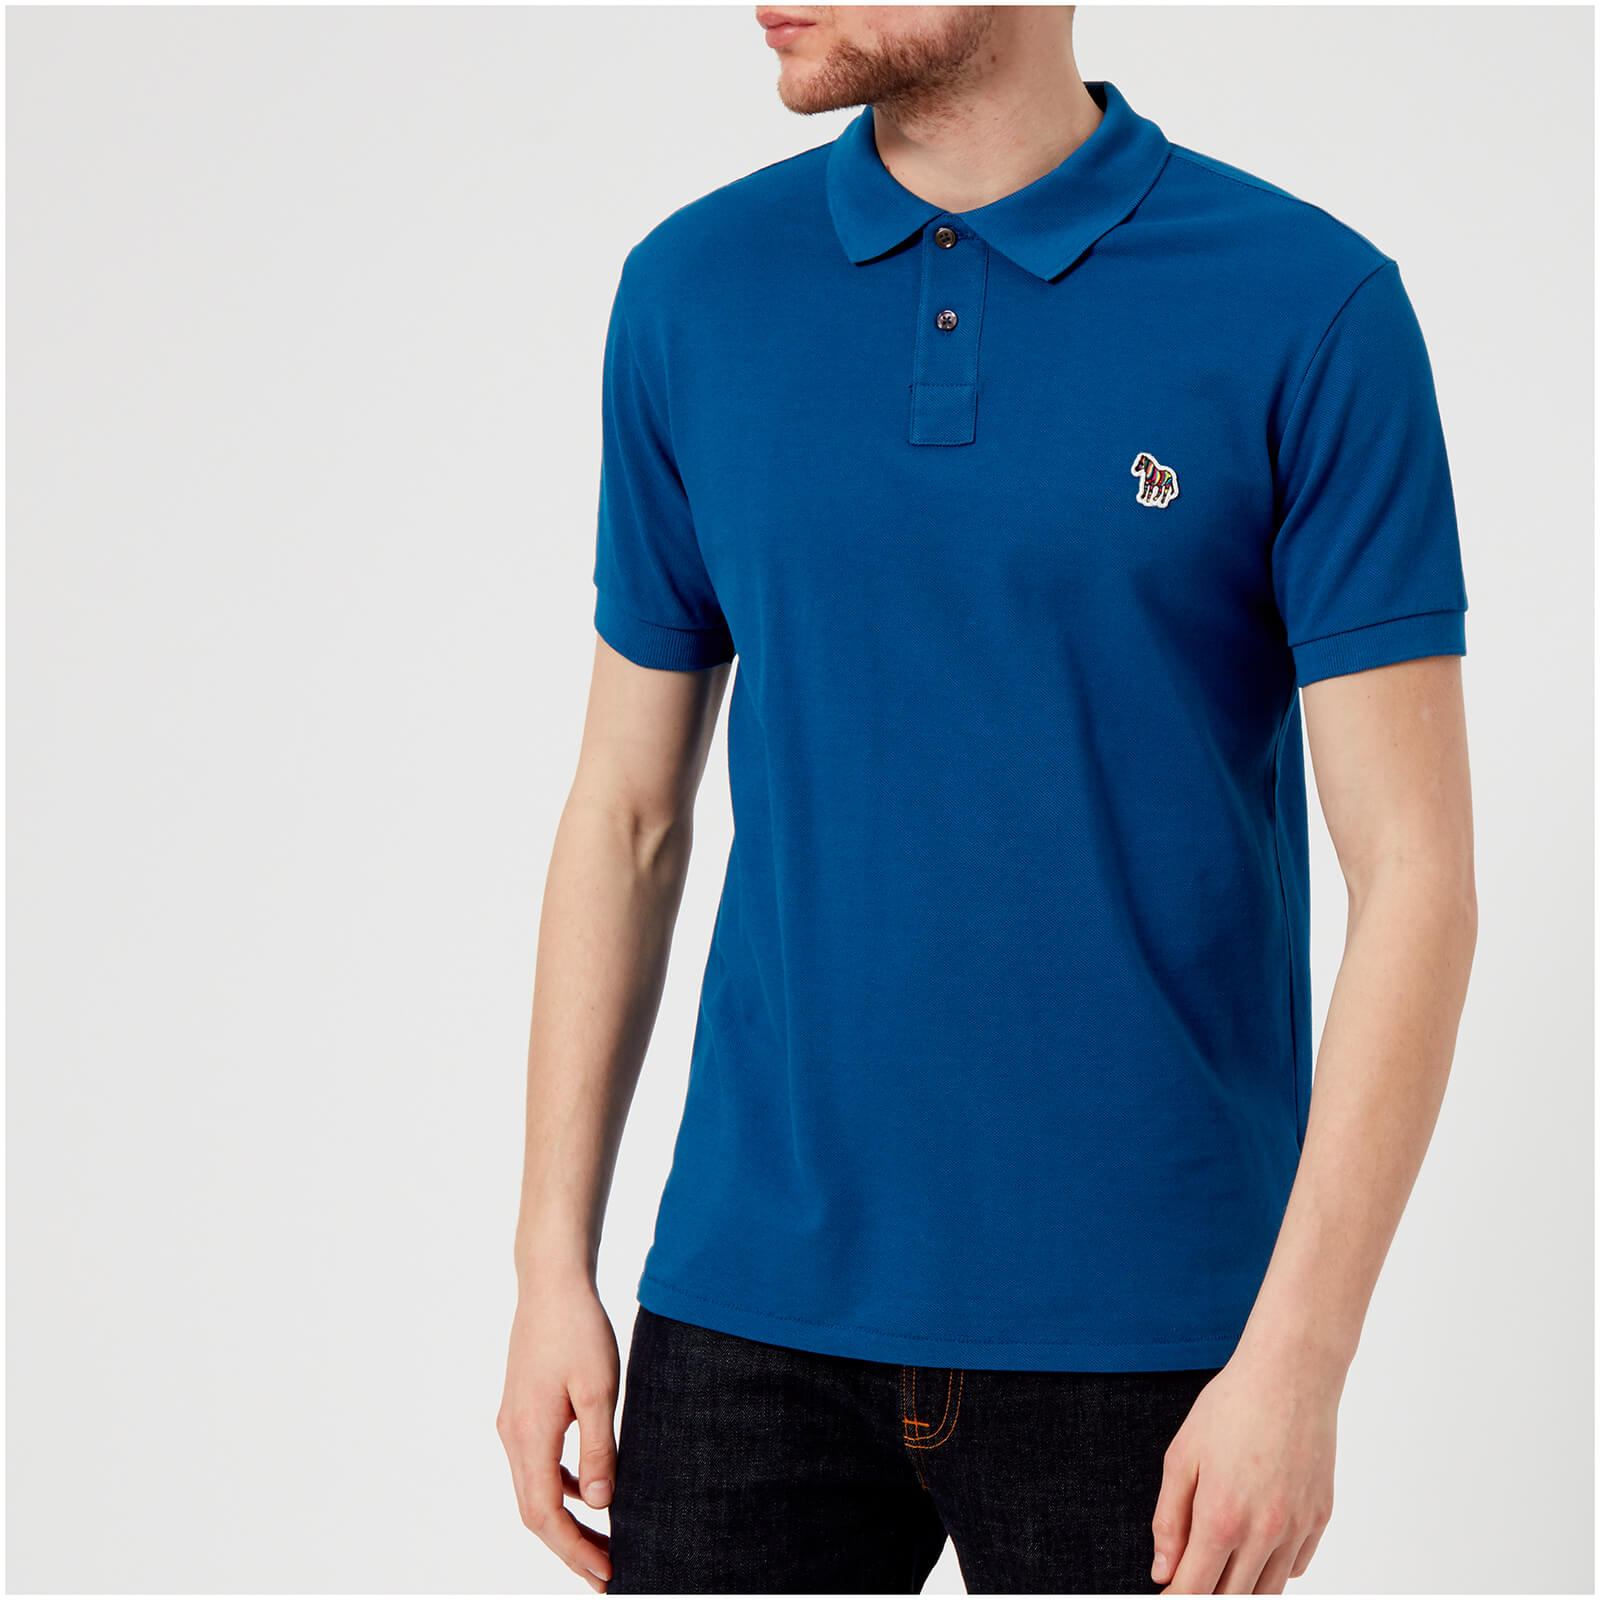 3f0089d9c2d78e PS by Paul Smith Men's Regular Fit Polo Shirt - Blue - Free UK Delivery  over £50